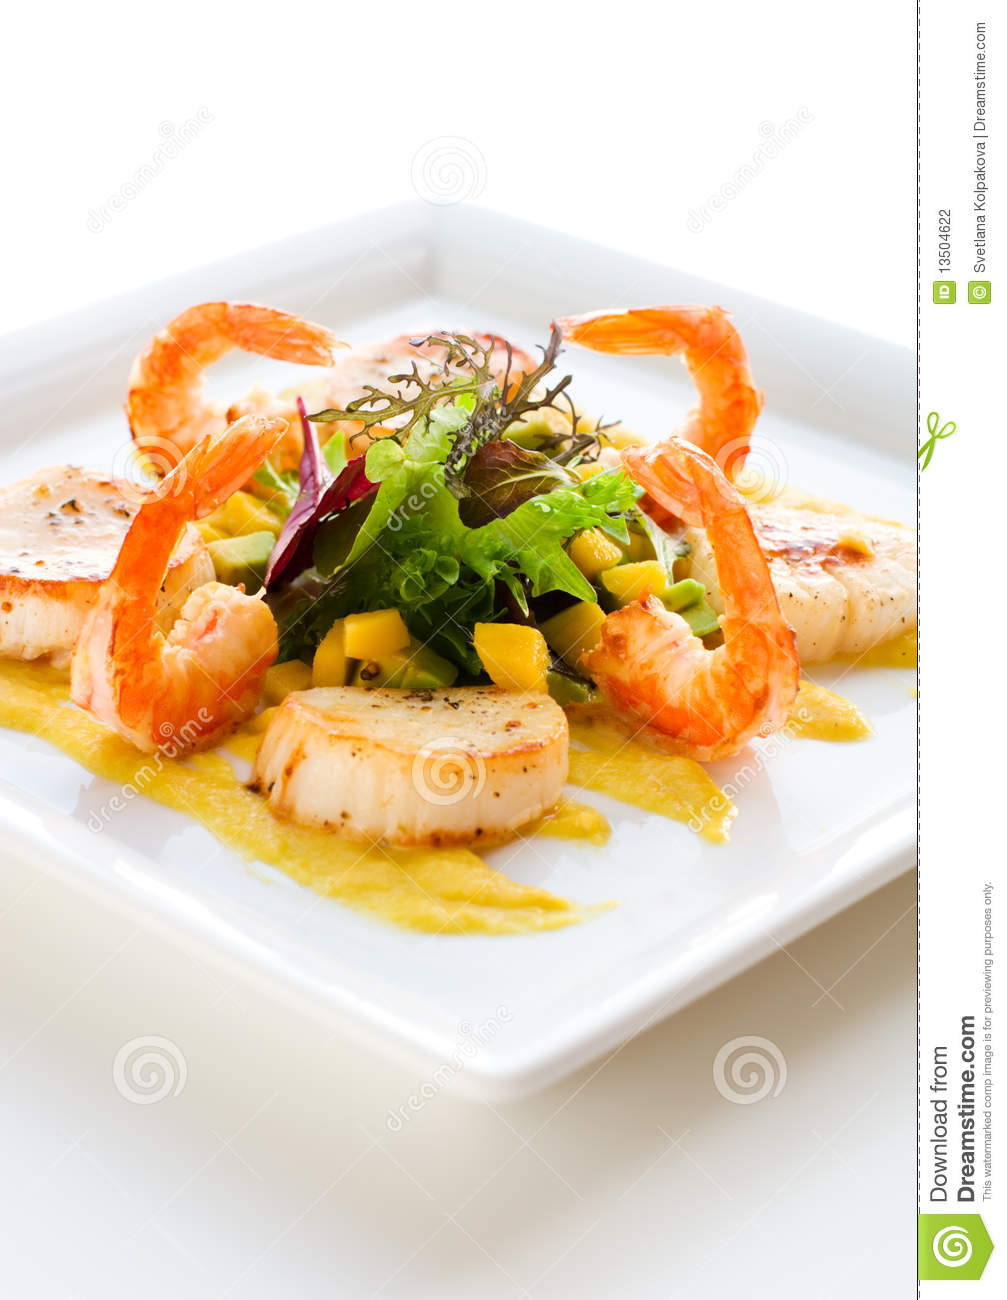 Salad with shrimp and scallop